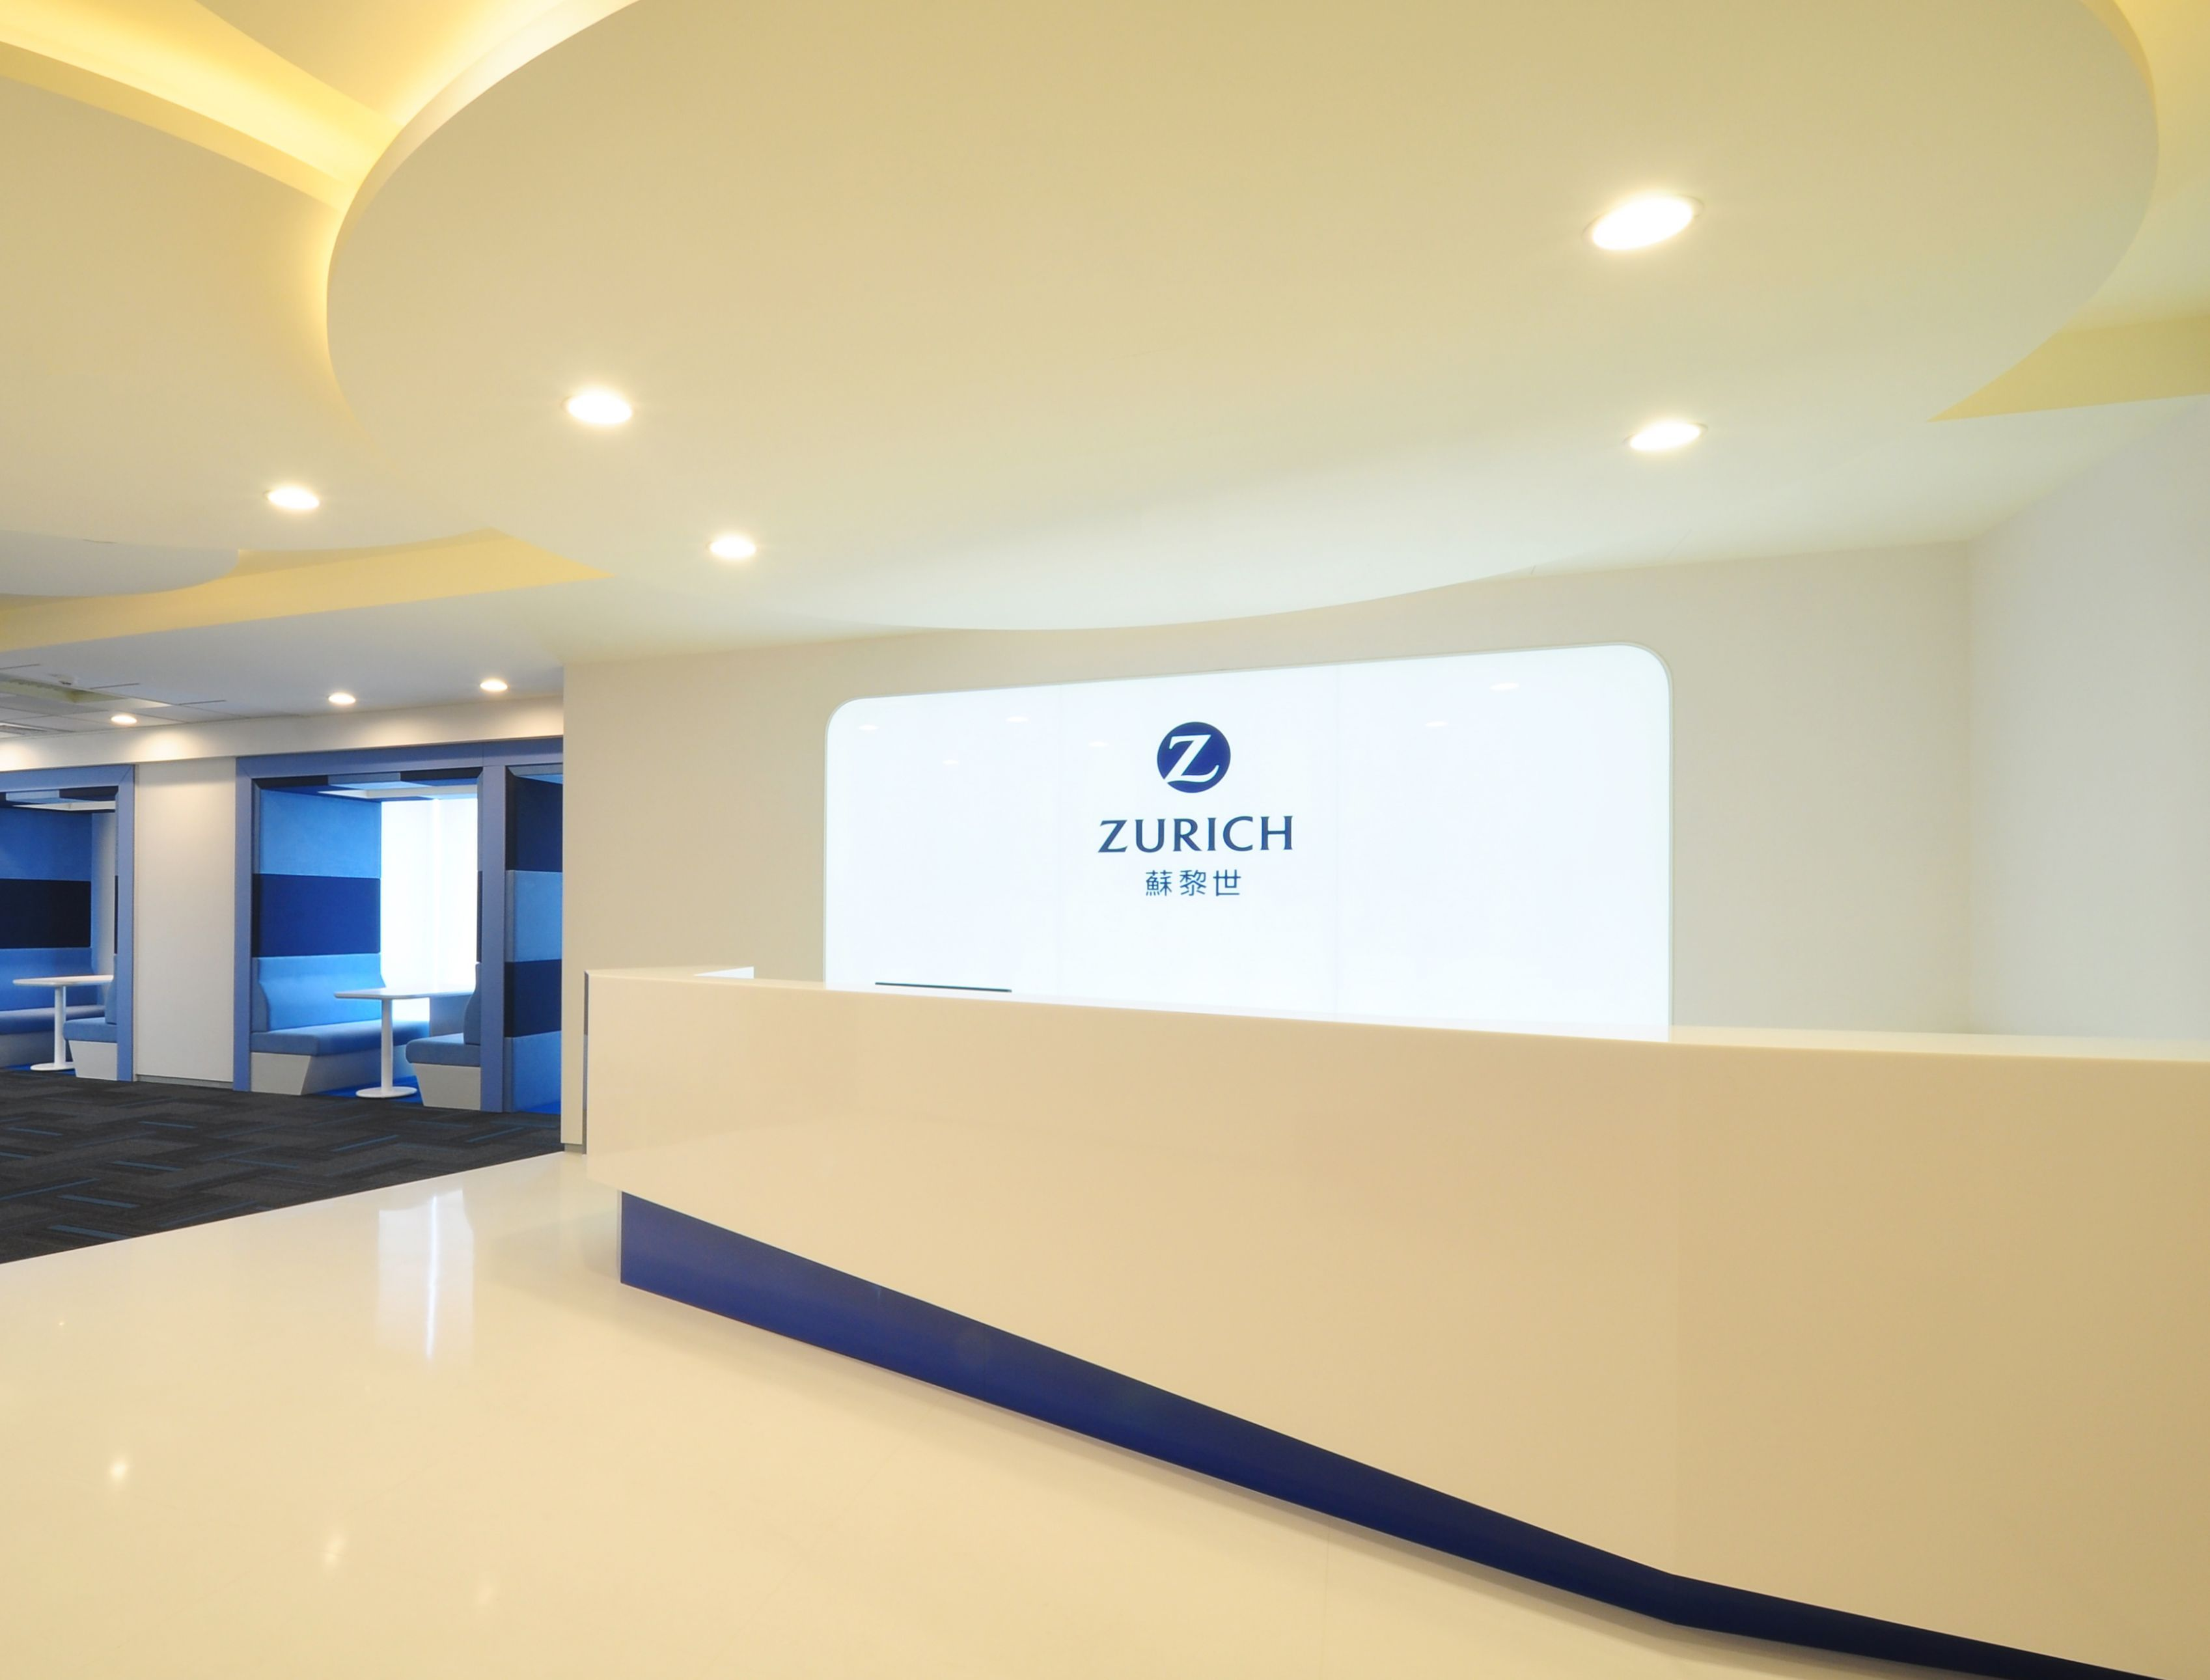 Zurich Insurance Group Taipei Taiwan Design And Build Office Design Project By The Steven Leach Group Zurich Insura Group Insurance Design Projects Zurich